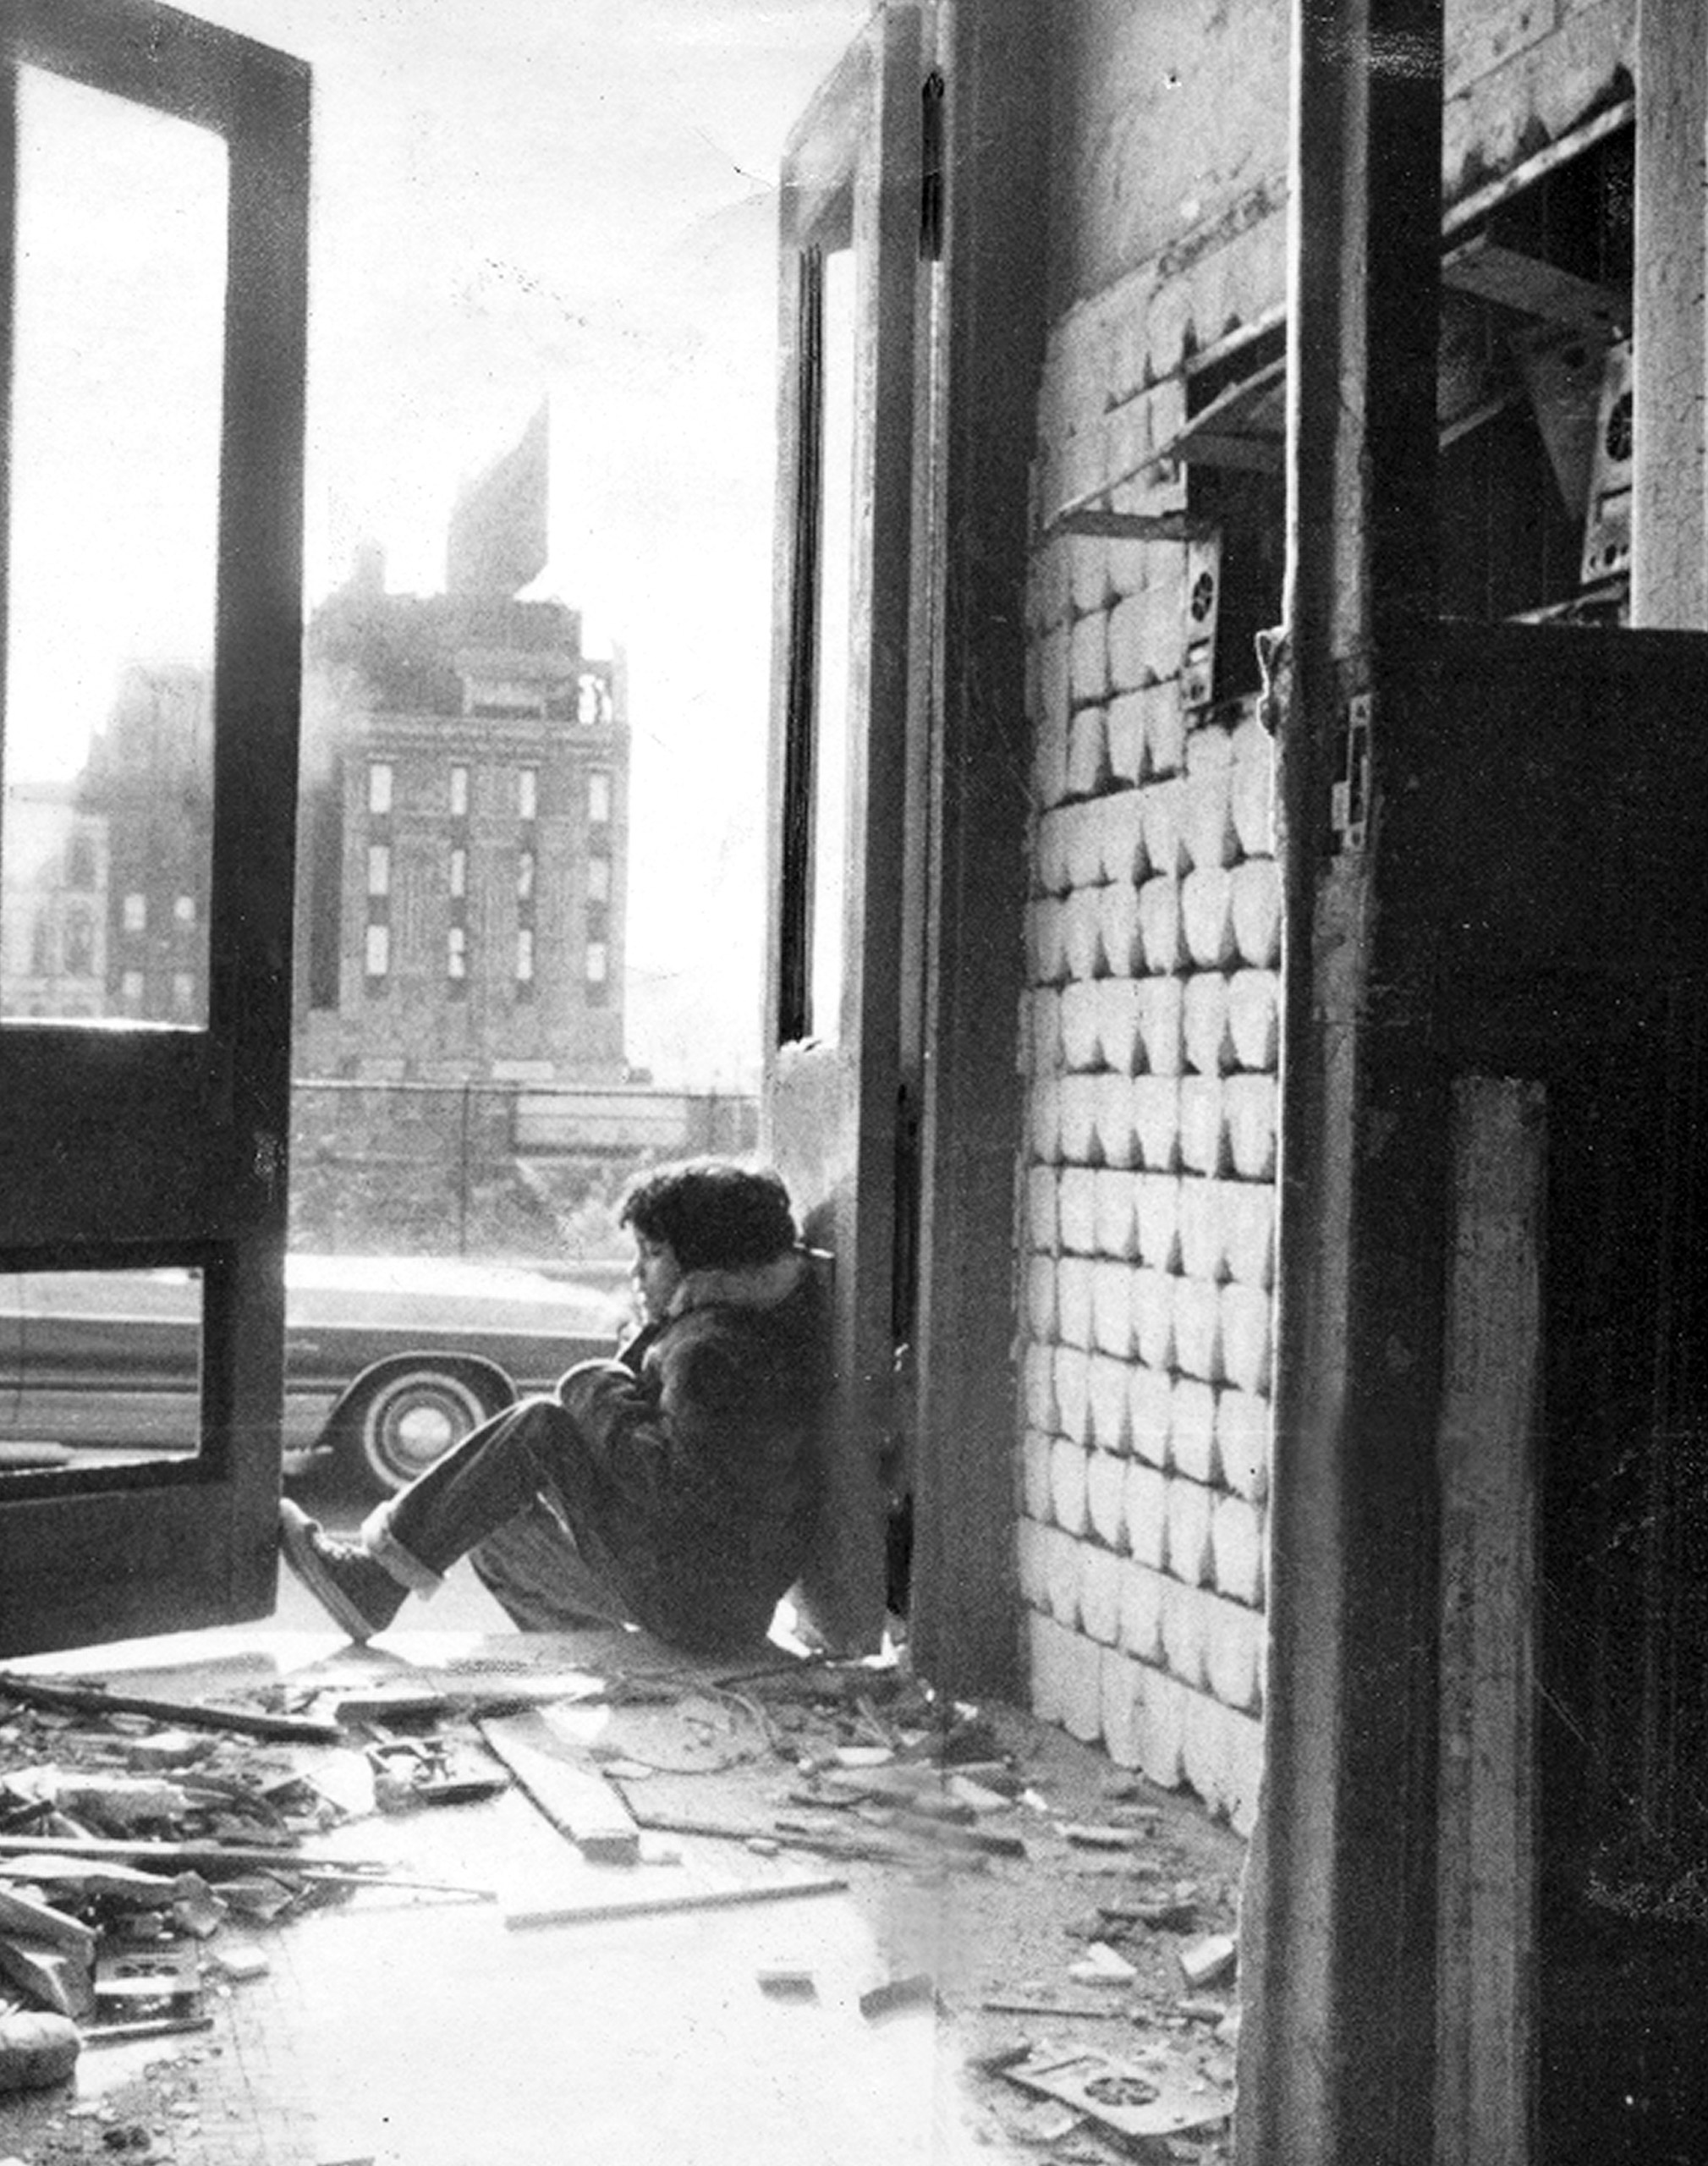 Child sits in doorway of rundown building at 135th St and Willis Ave. in the South Bronx, 1976.